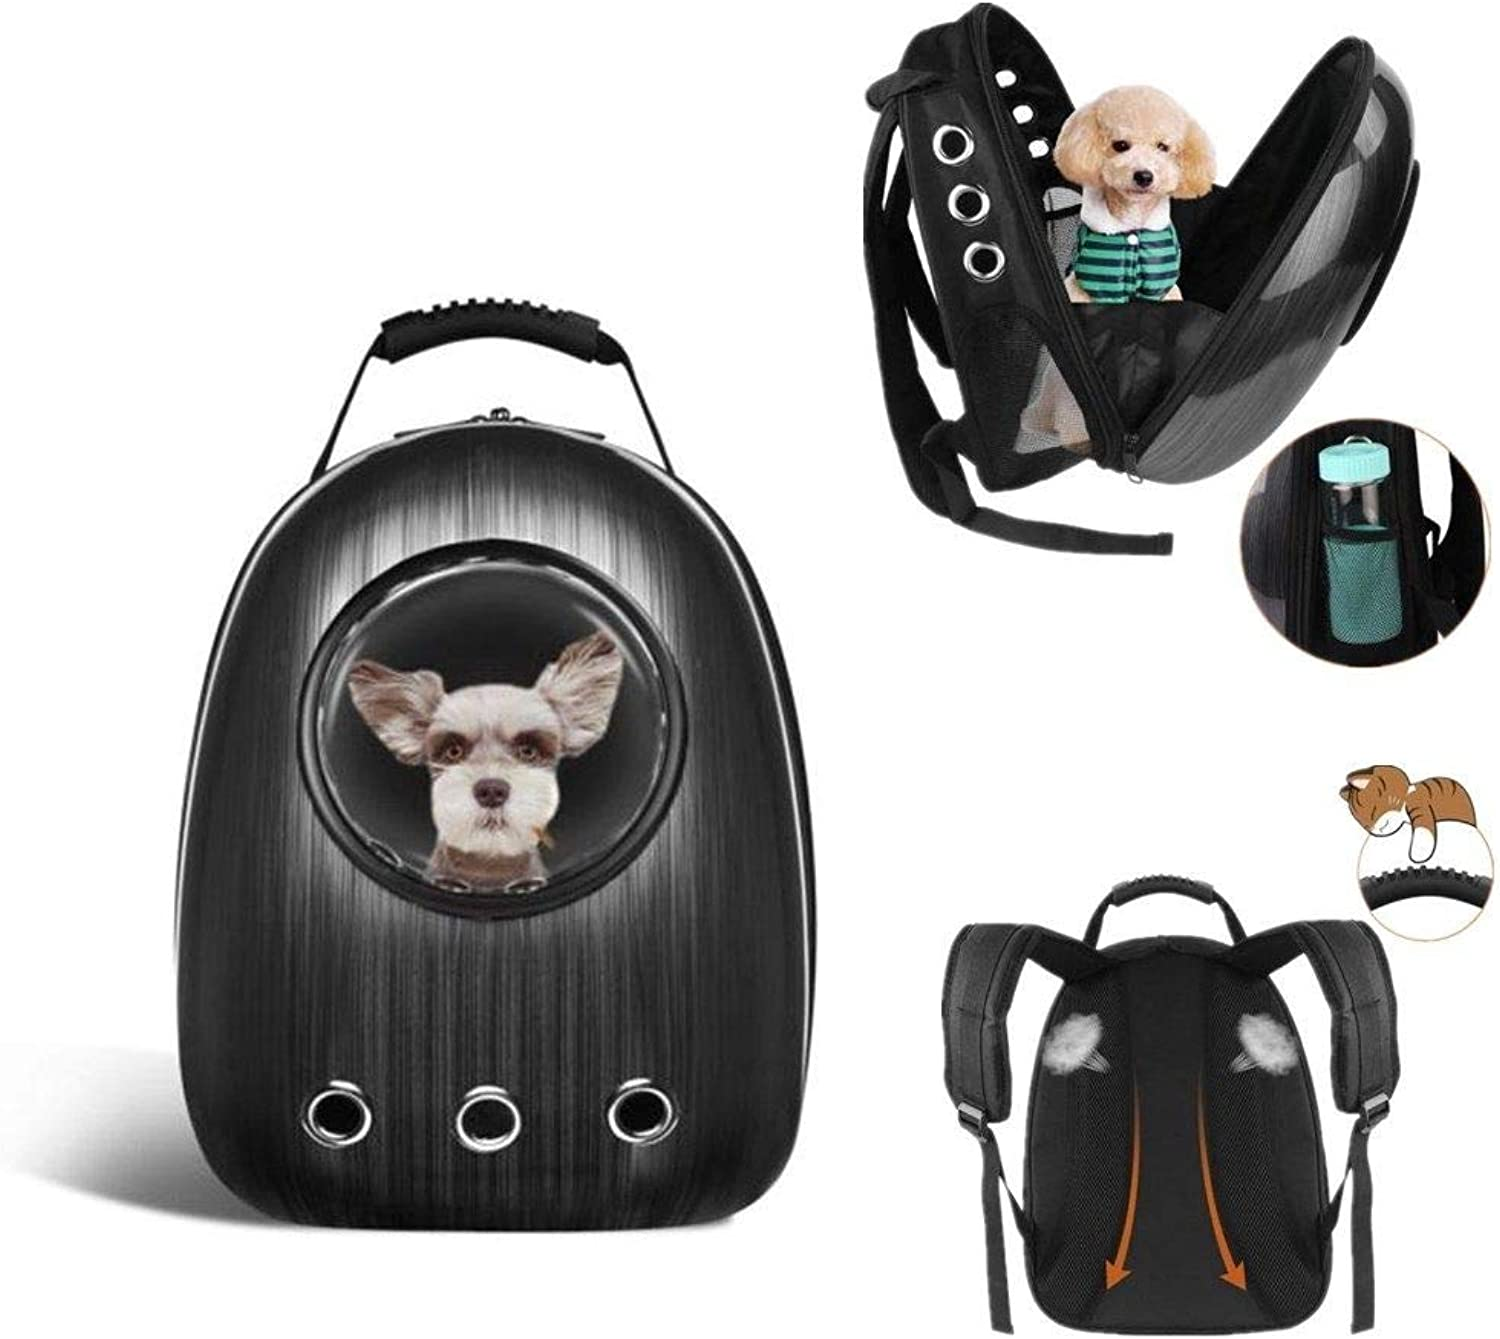 FidgetFidget Waterproof Pet Dog Cat Backpack Carrier Astronaut Capsule Breathable Bag Handbag